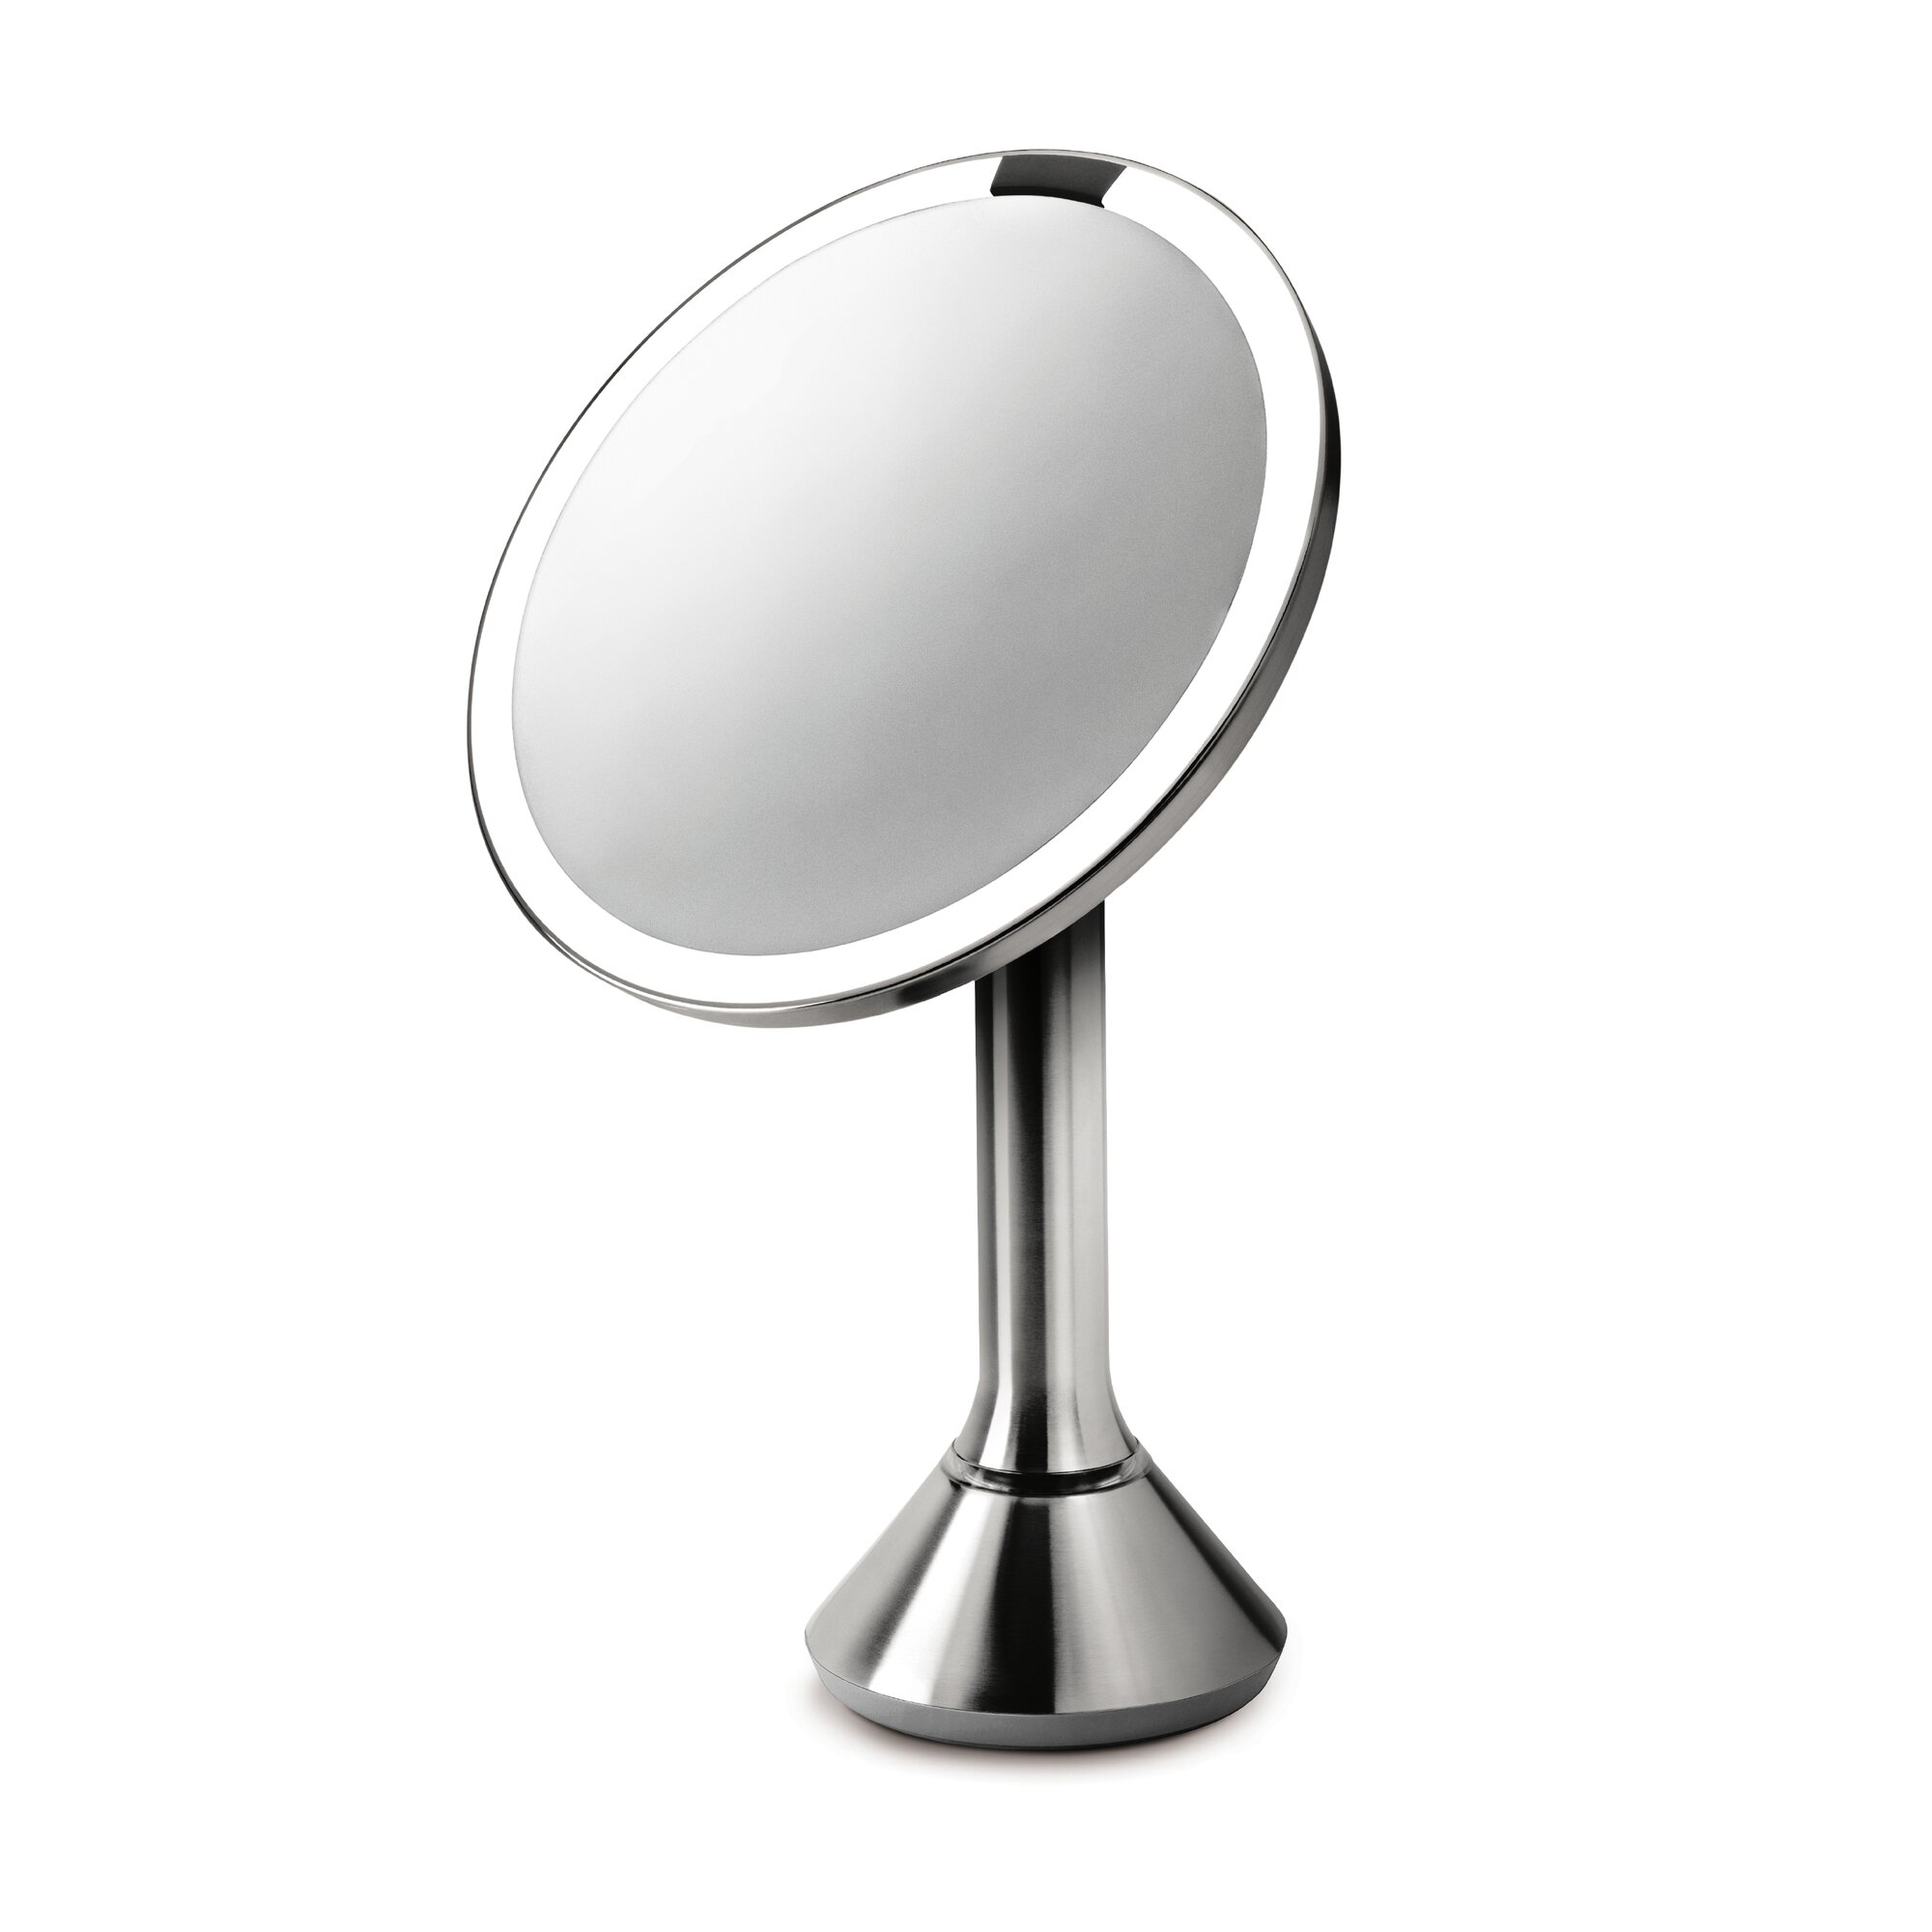 simplehuman sensor activated lighted vanity mirror 5x magnification 8 in reviews wayfair. Black Bedroom Furniture Sets. Home Design Ideas